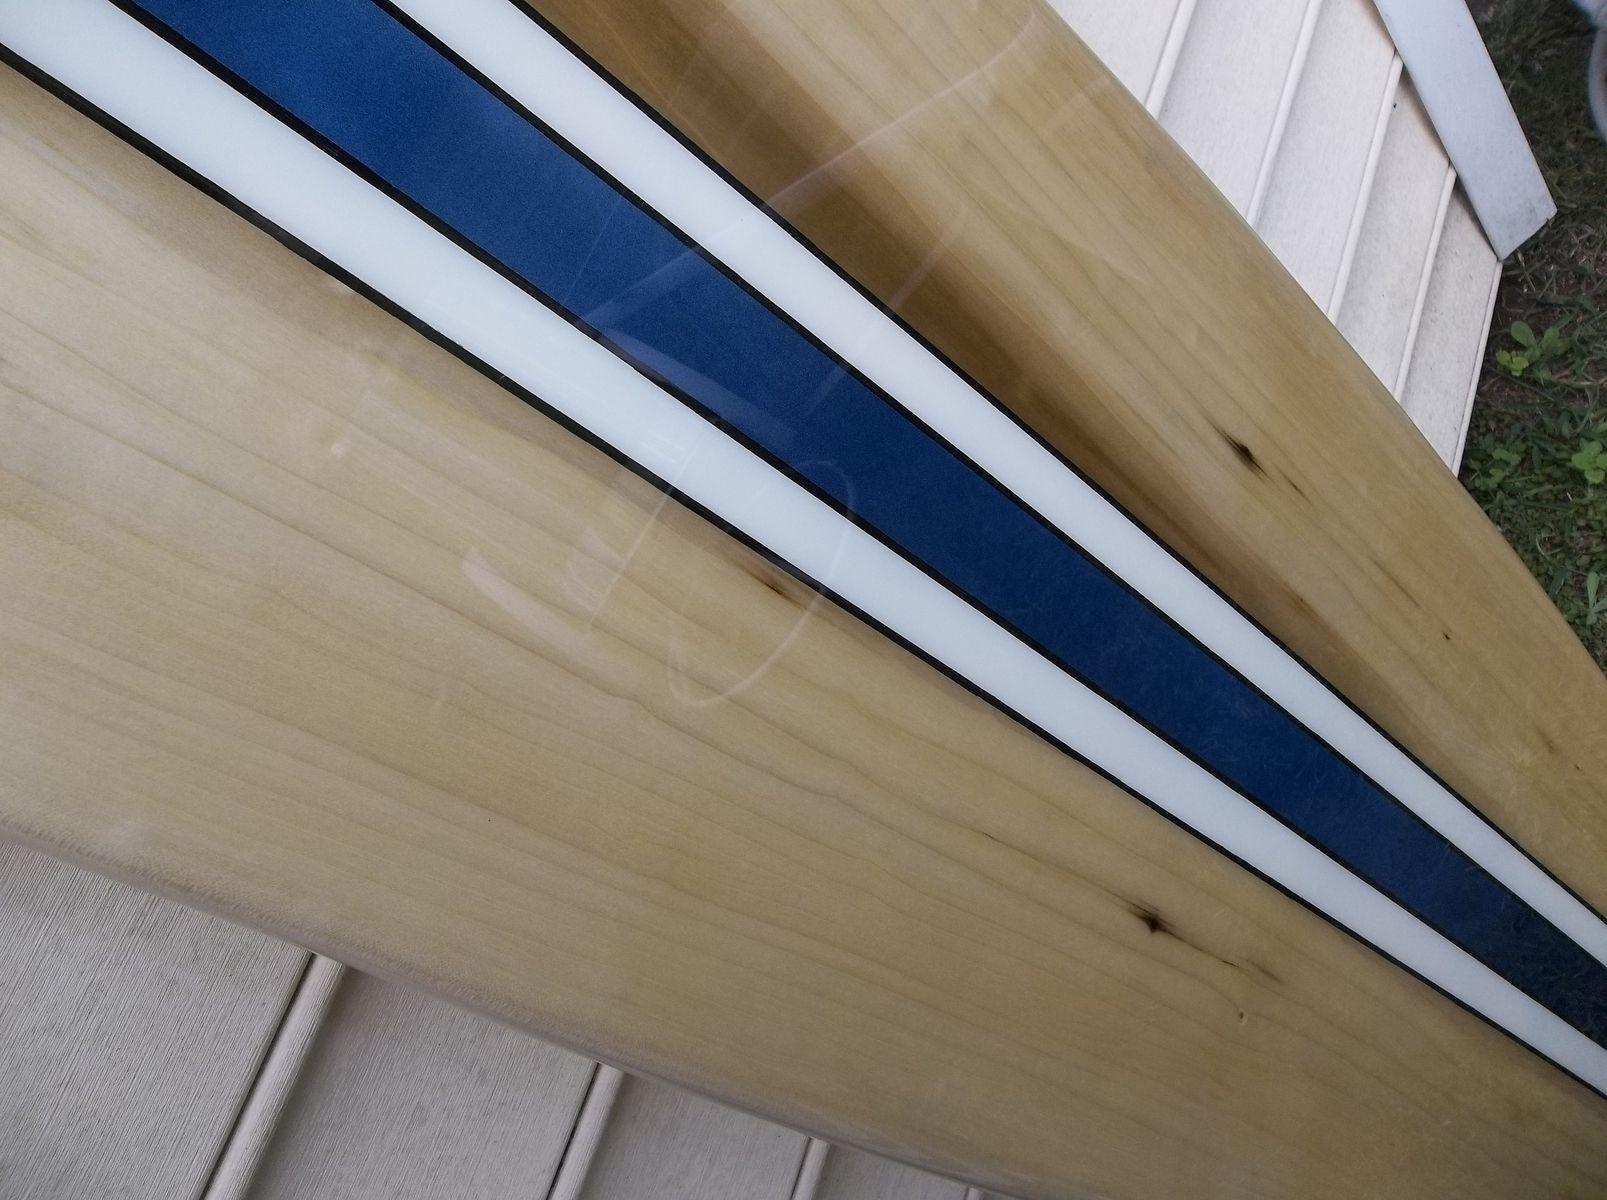 Hand Made Surfboard Wall Hangings, Surfboard Wall Artflyone Intended For Surf Board Wall Art (Image 10 of 20)